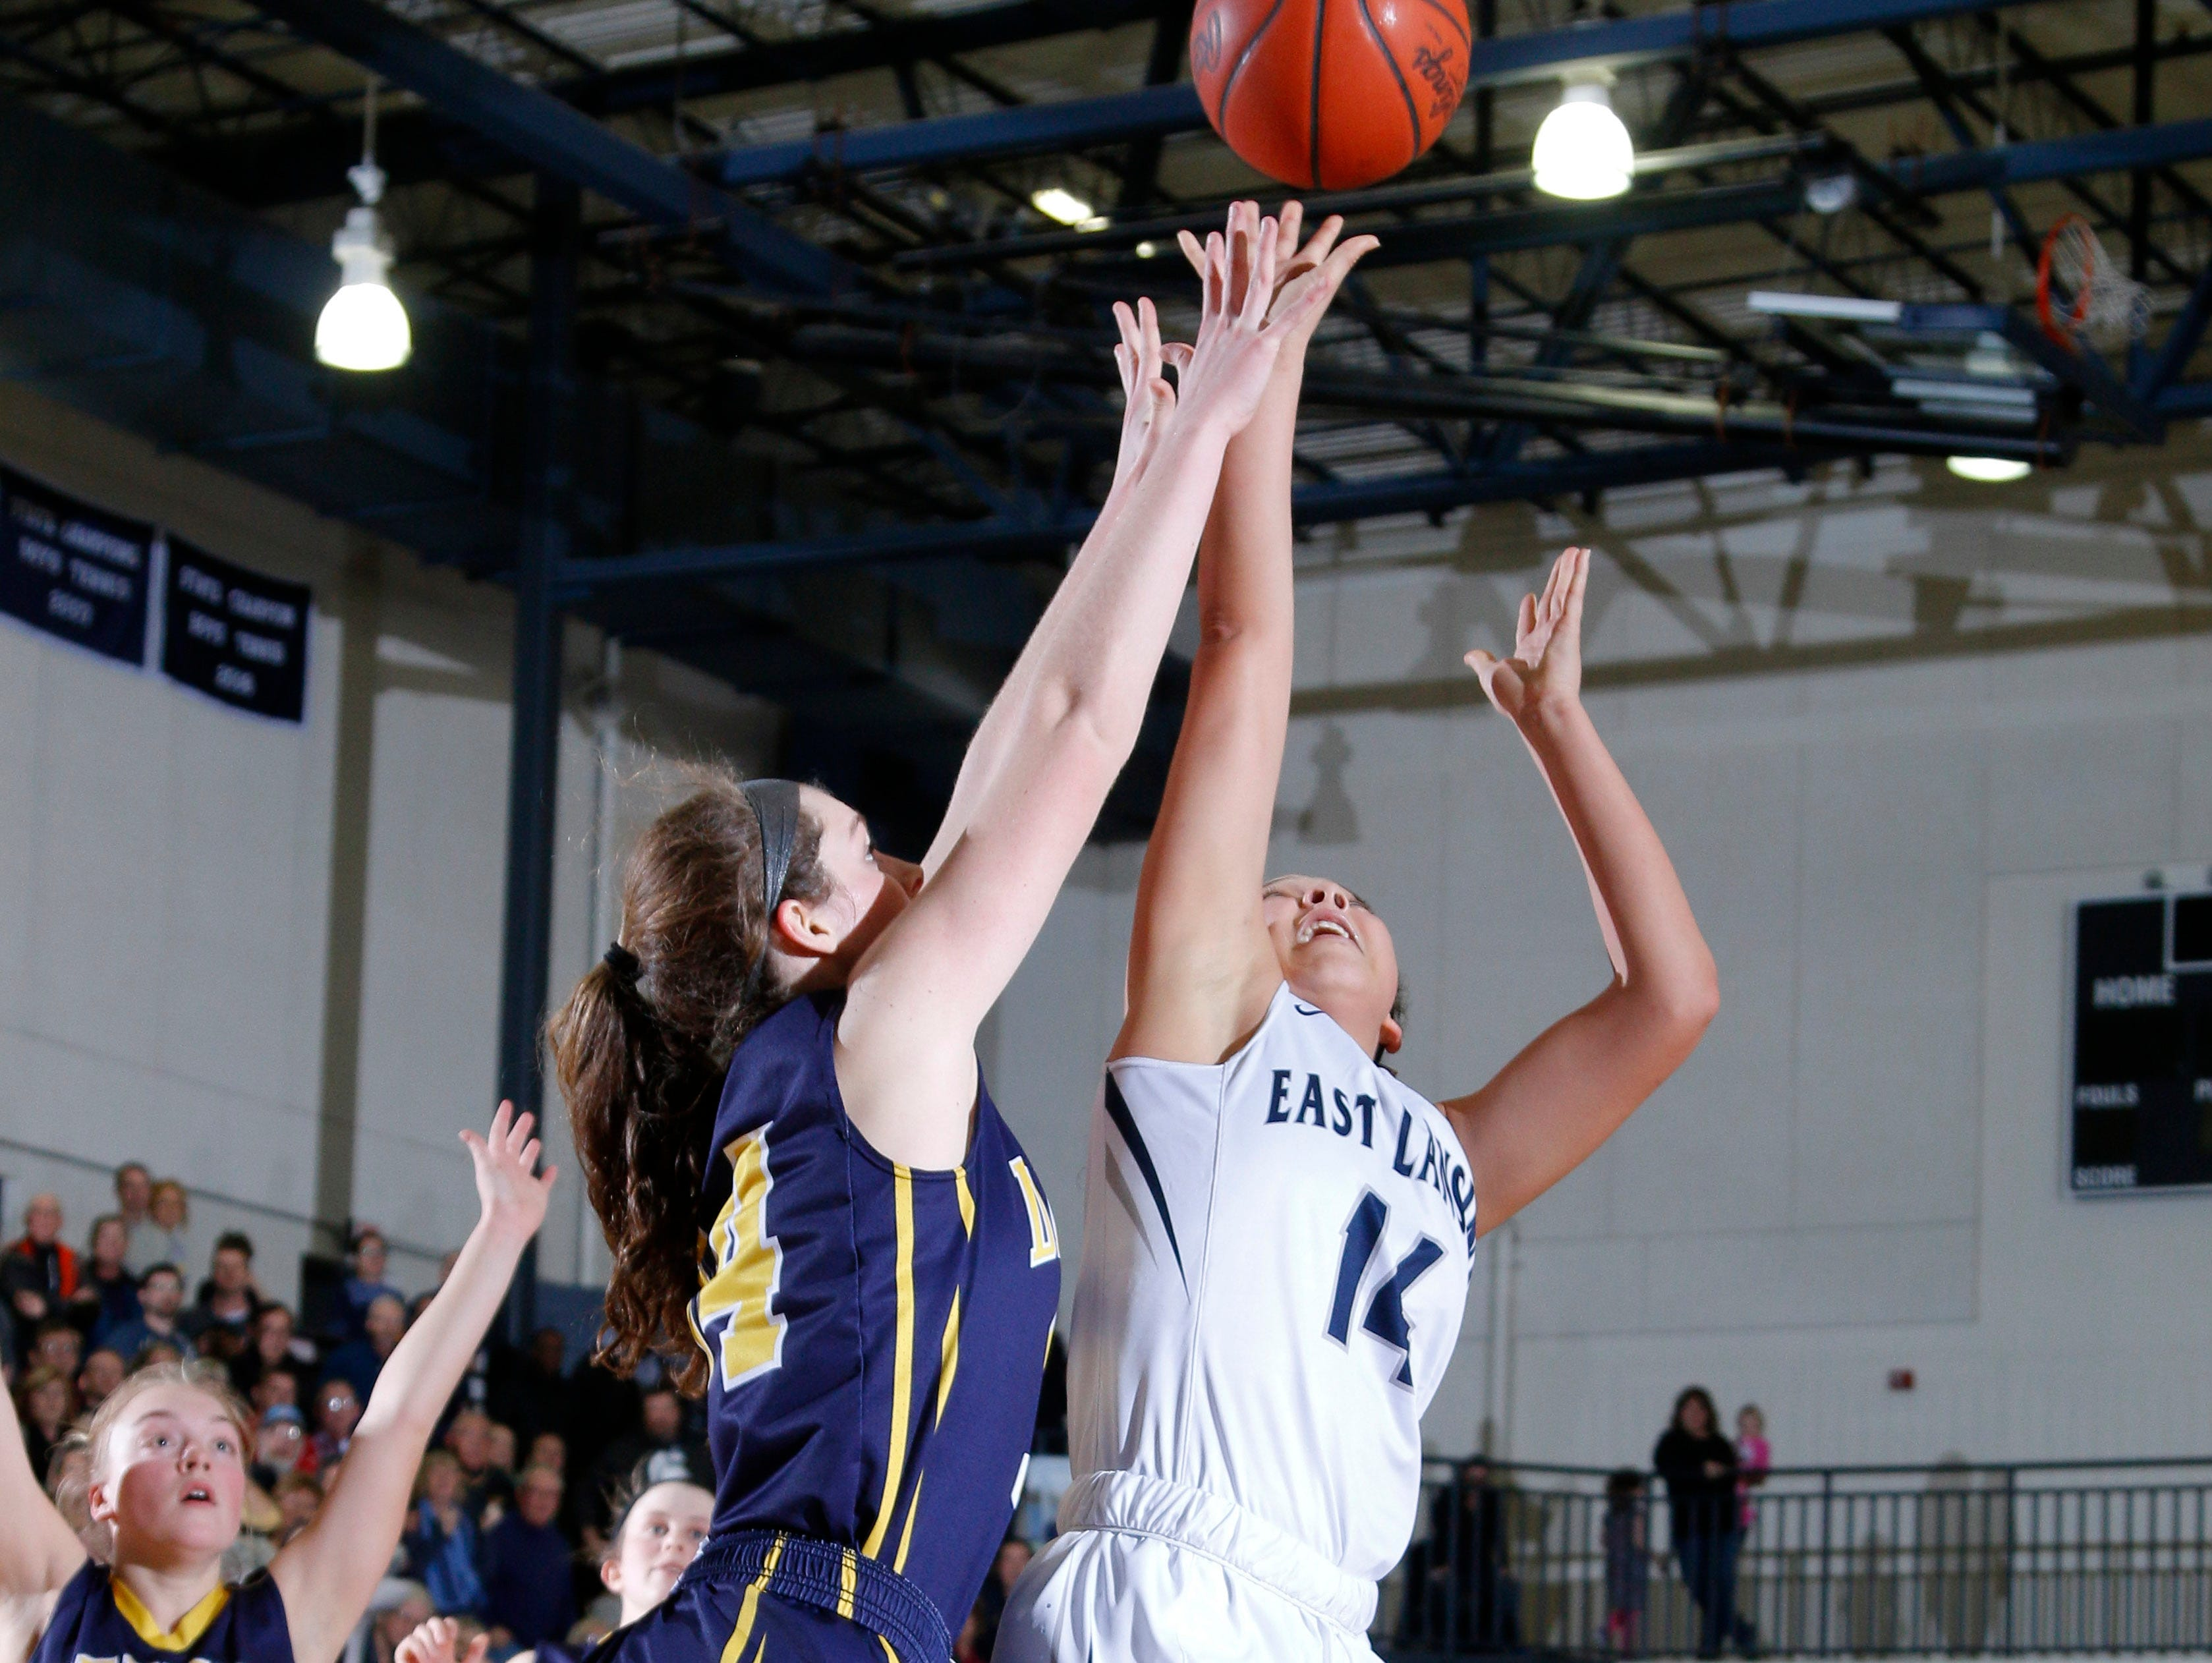 East Lansing's Aazh Nye, right, gets the game-winning shot against DeWitt's Grace George during their district final game Friday, March 3, 2017, in East Lansing, Mich. East Lansing won 48-47.